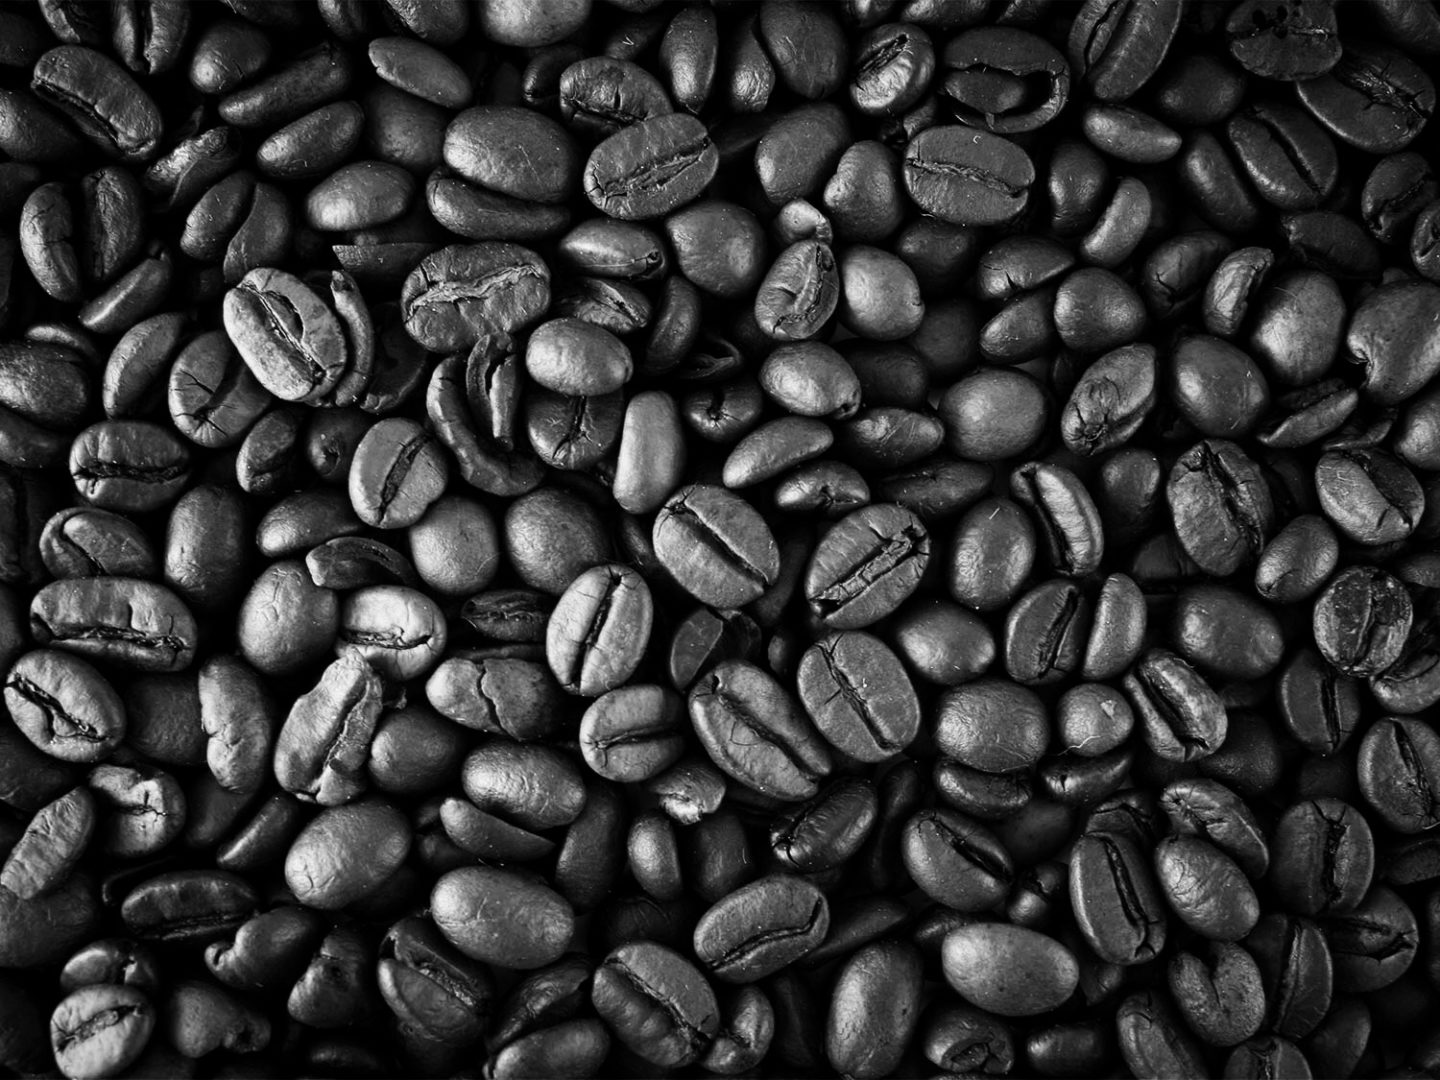 Academic rawness and the colonized coffee that fuels it